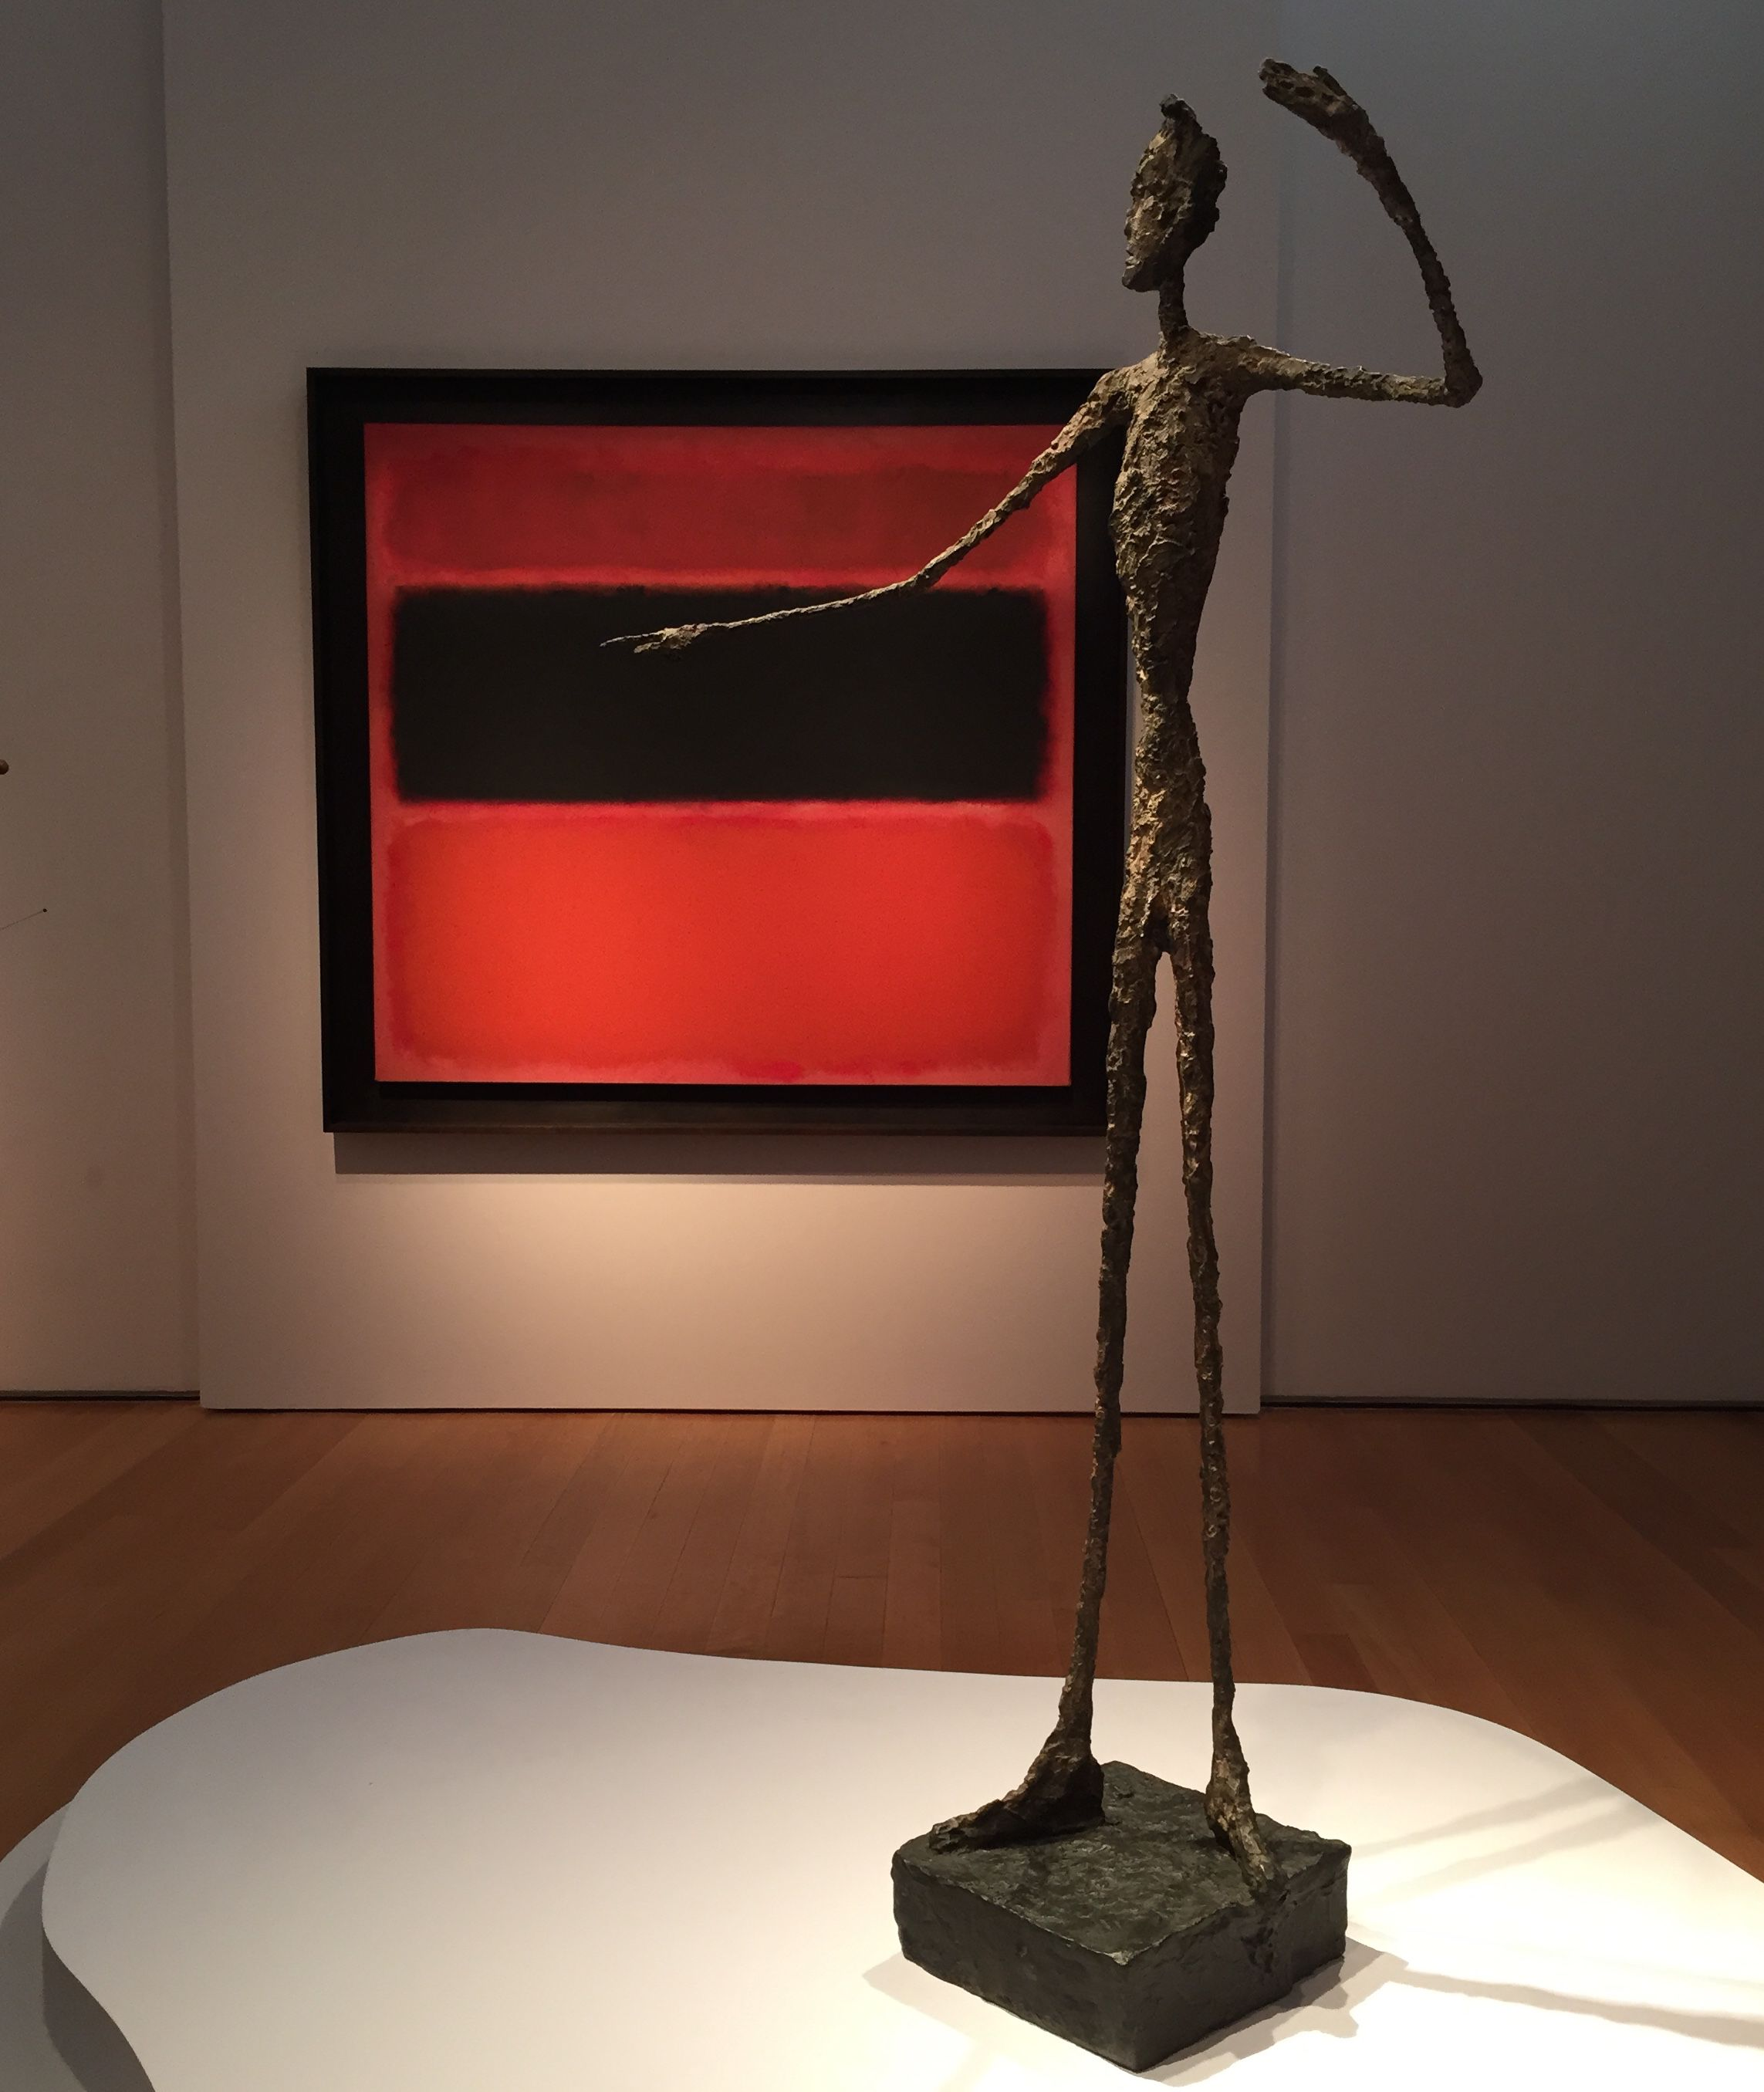 """Alberto Giacometti's """"L'homme au doigt"""" with Mark Rothko's """"No. 36 (Black Stripe)"""" in the background"""